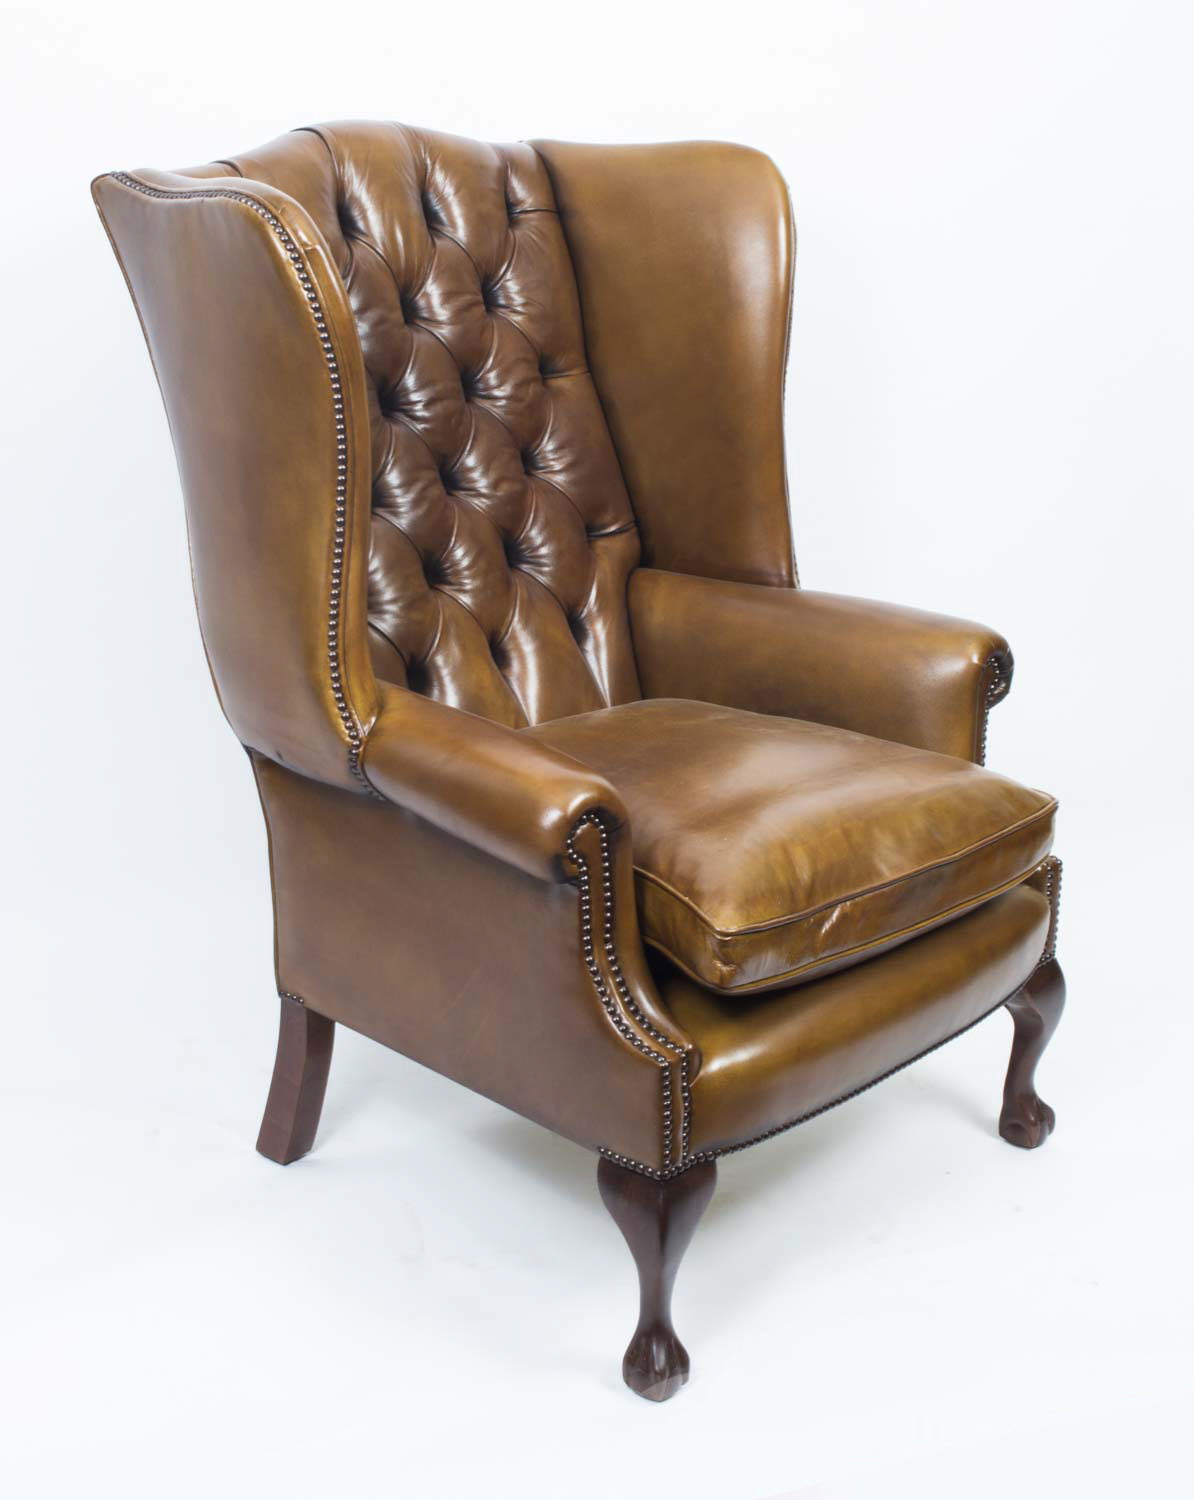 Leather Chippendale Wing Back Chair Armchair Yellow Tan Ref No 06566d